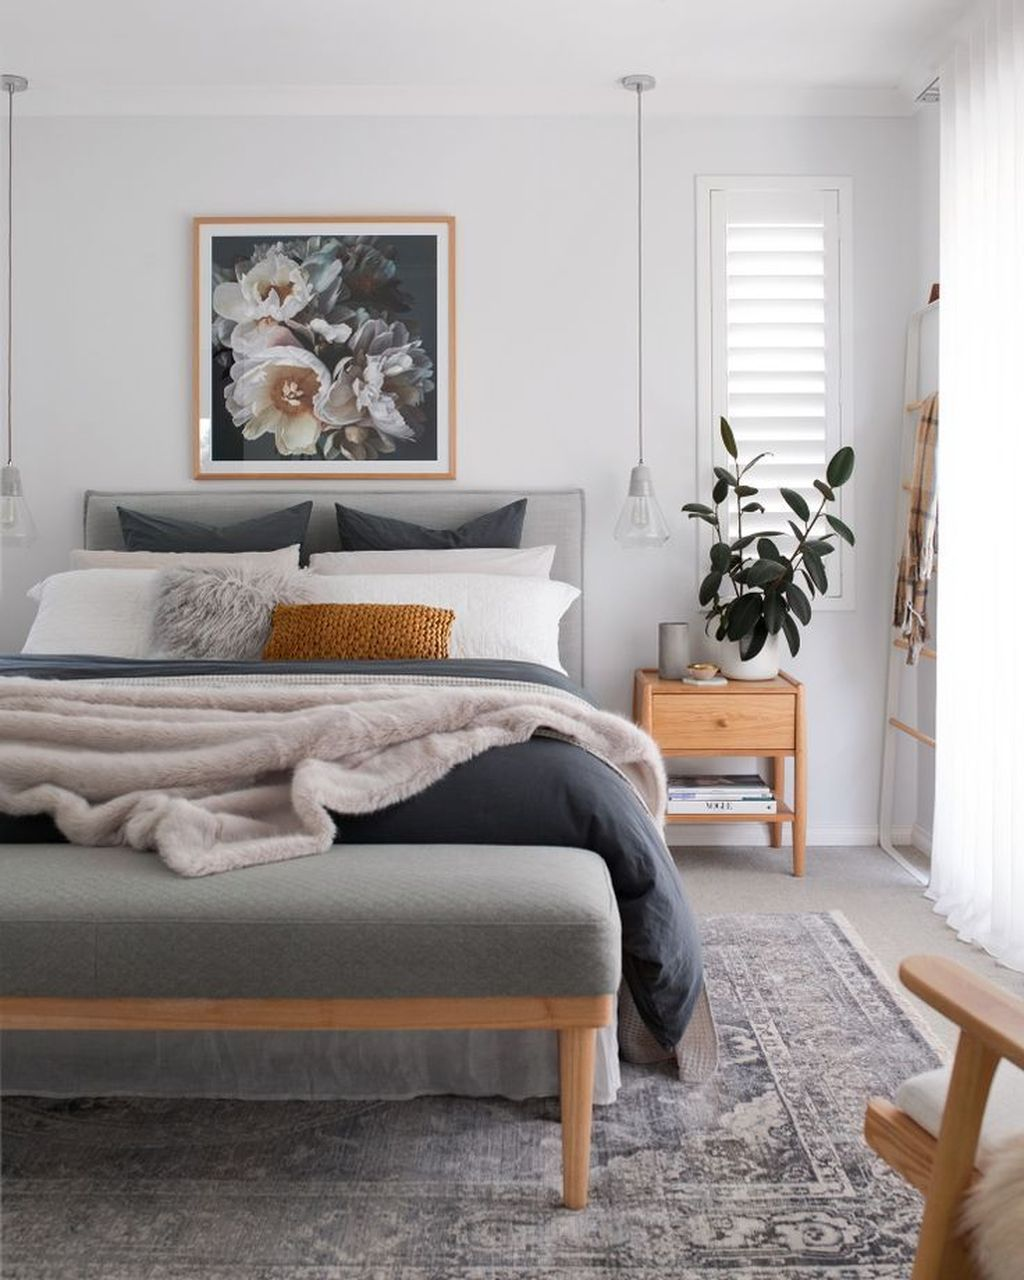 38 Inspiring Modern Scandinavian Style Bedroom Decor Ideas With Images Master Bedrooms Decor Bedroom Interior Home Decor Bedroom